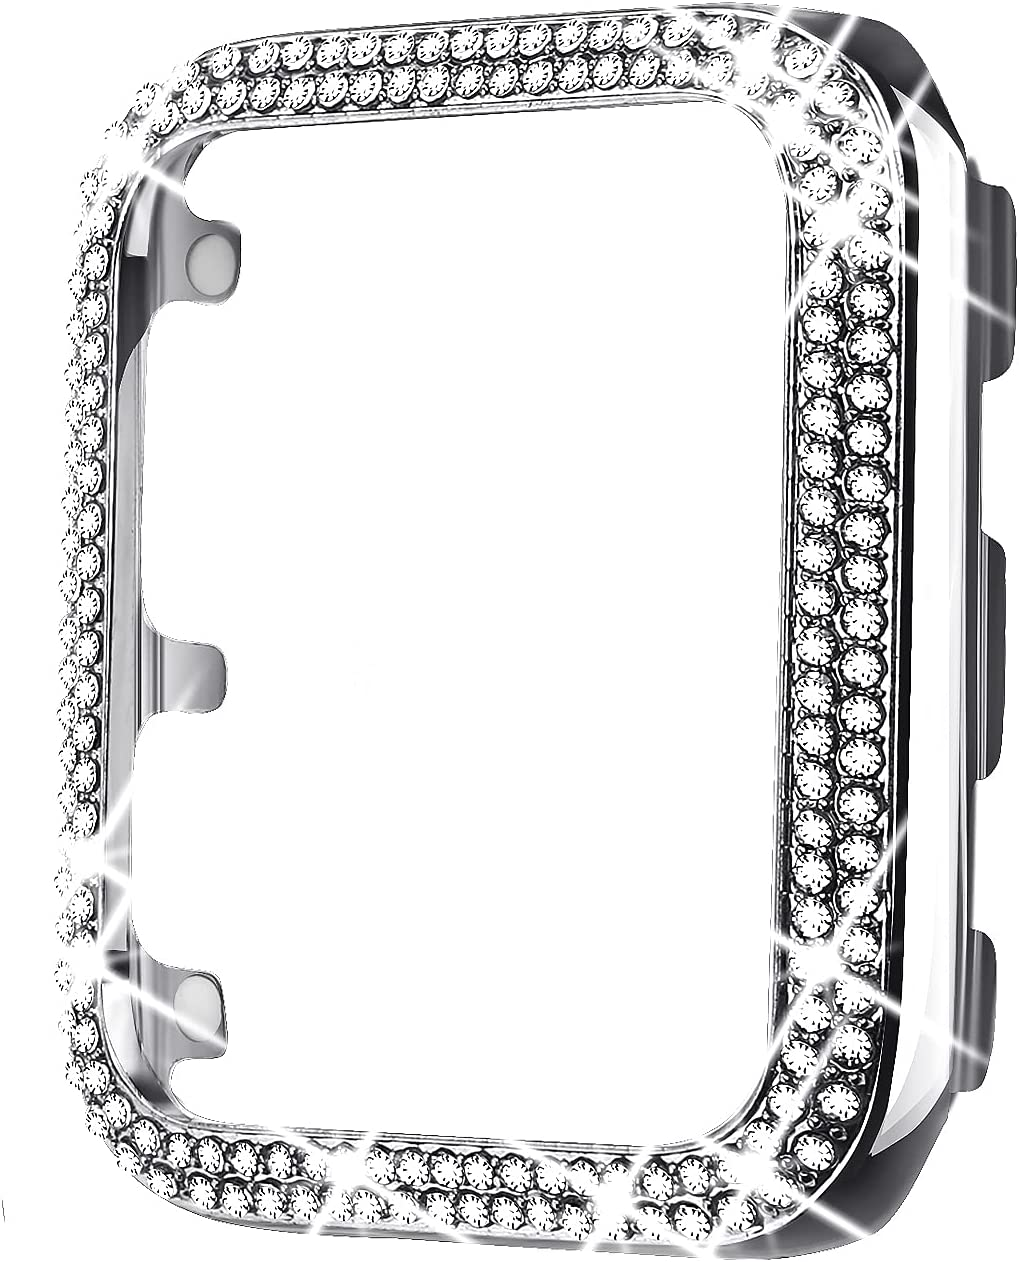 Secbolt 40mm Bling Metal Case Compatible with Apple Watch- All Around Protective Cover Bumper Frame for iWatch SE Series 6/5/4, for Women Girls(Silver)